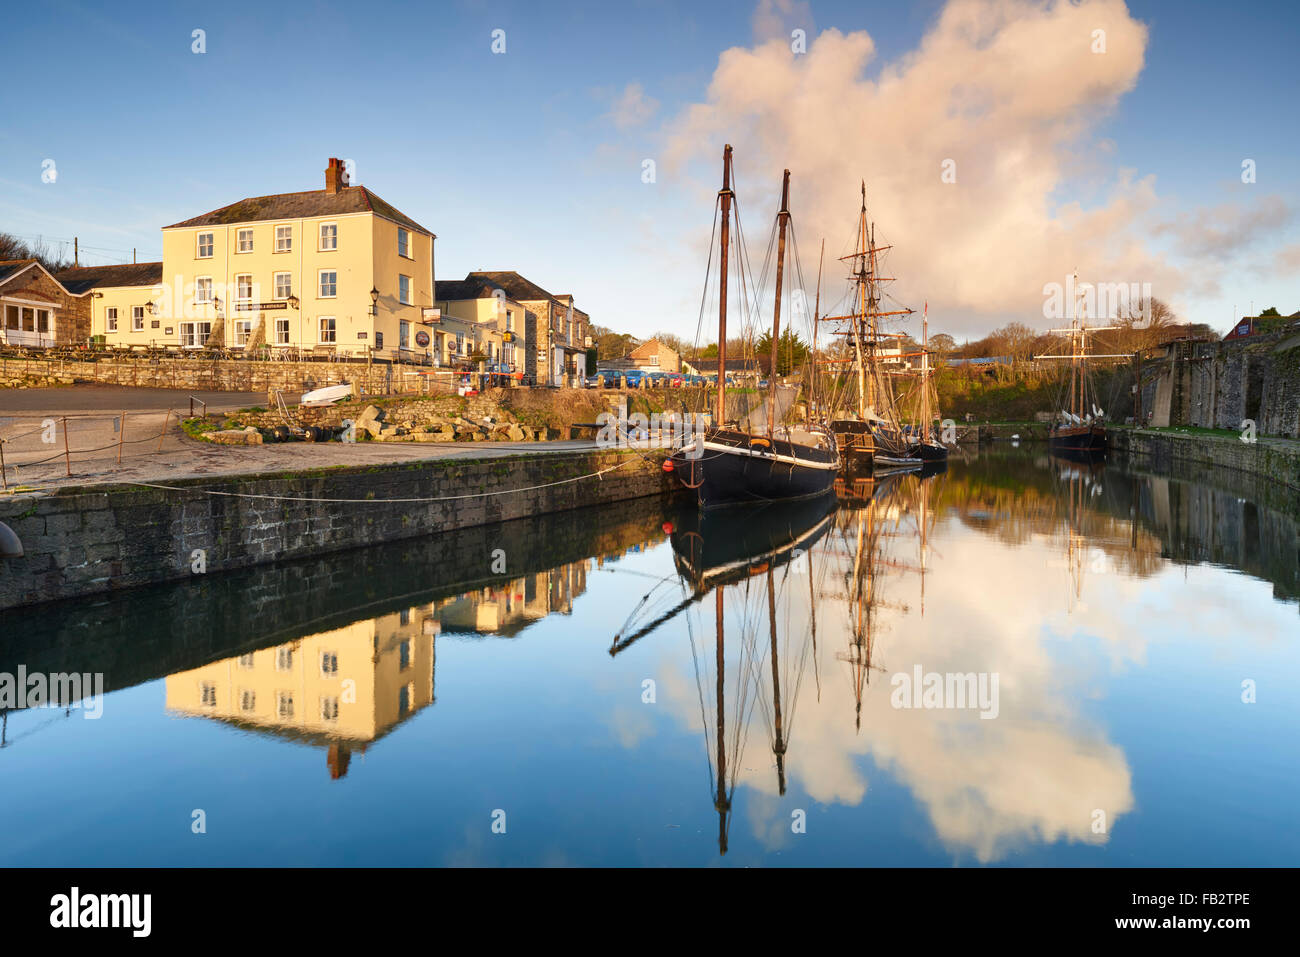 The waterfront at the historic port of Charlestown Cornwall - Stock Image